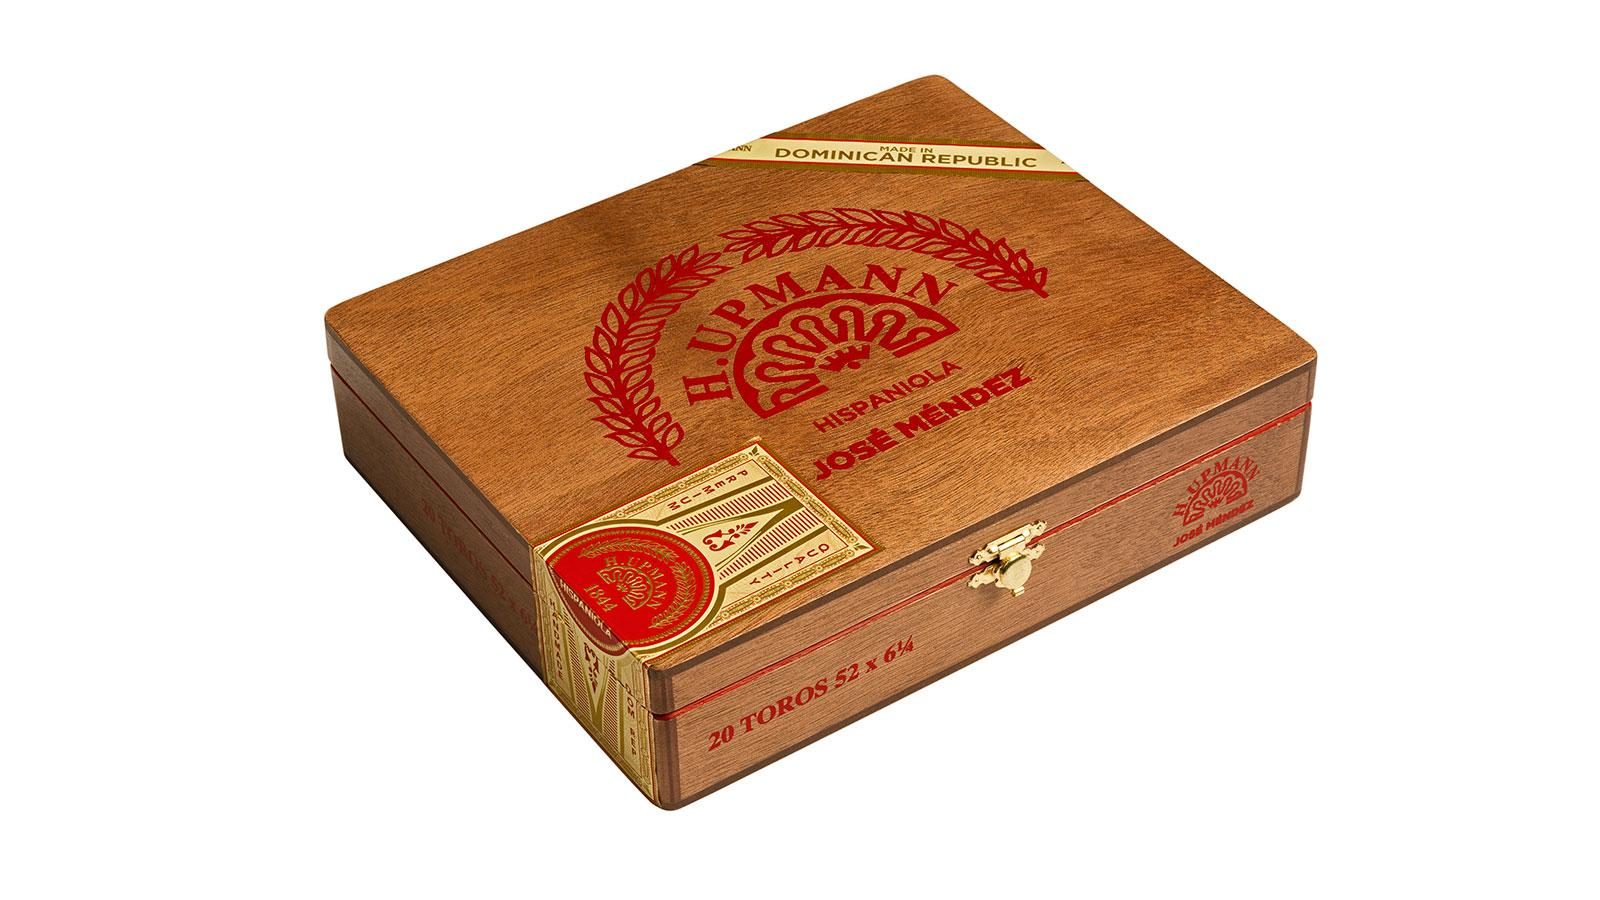 Upcoming H. Upmann Hispaniola By Jose Mendez Highlights Dominican Tobacco